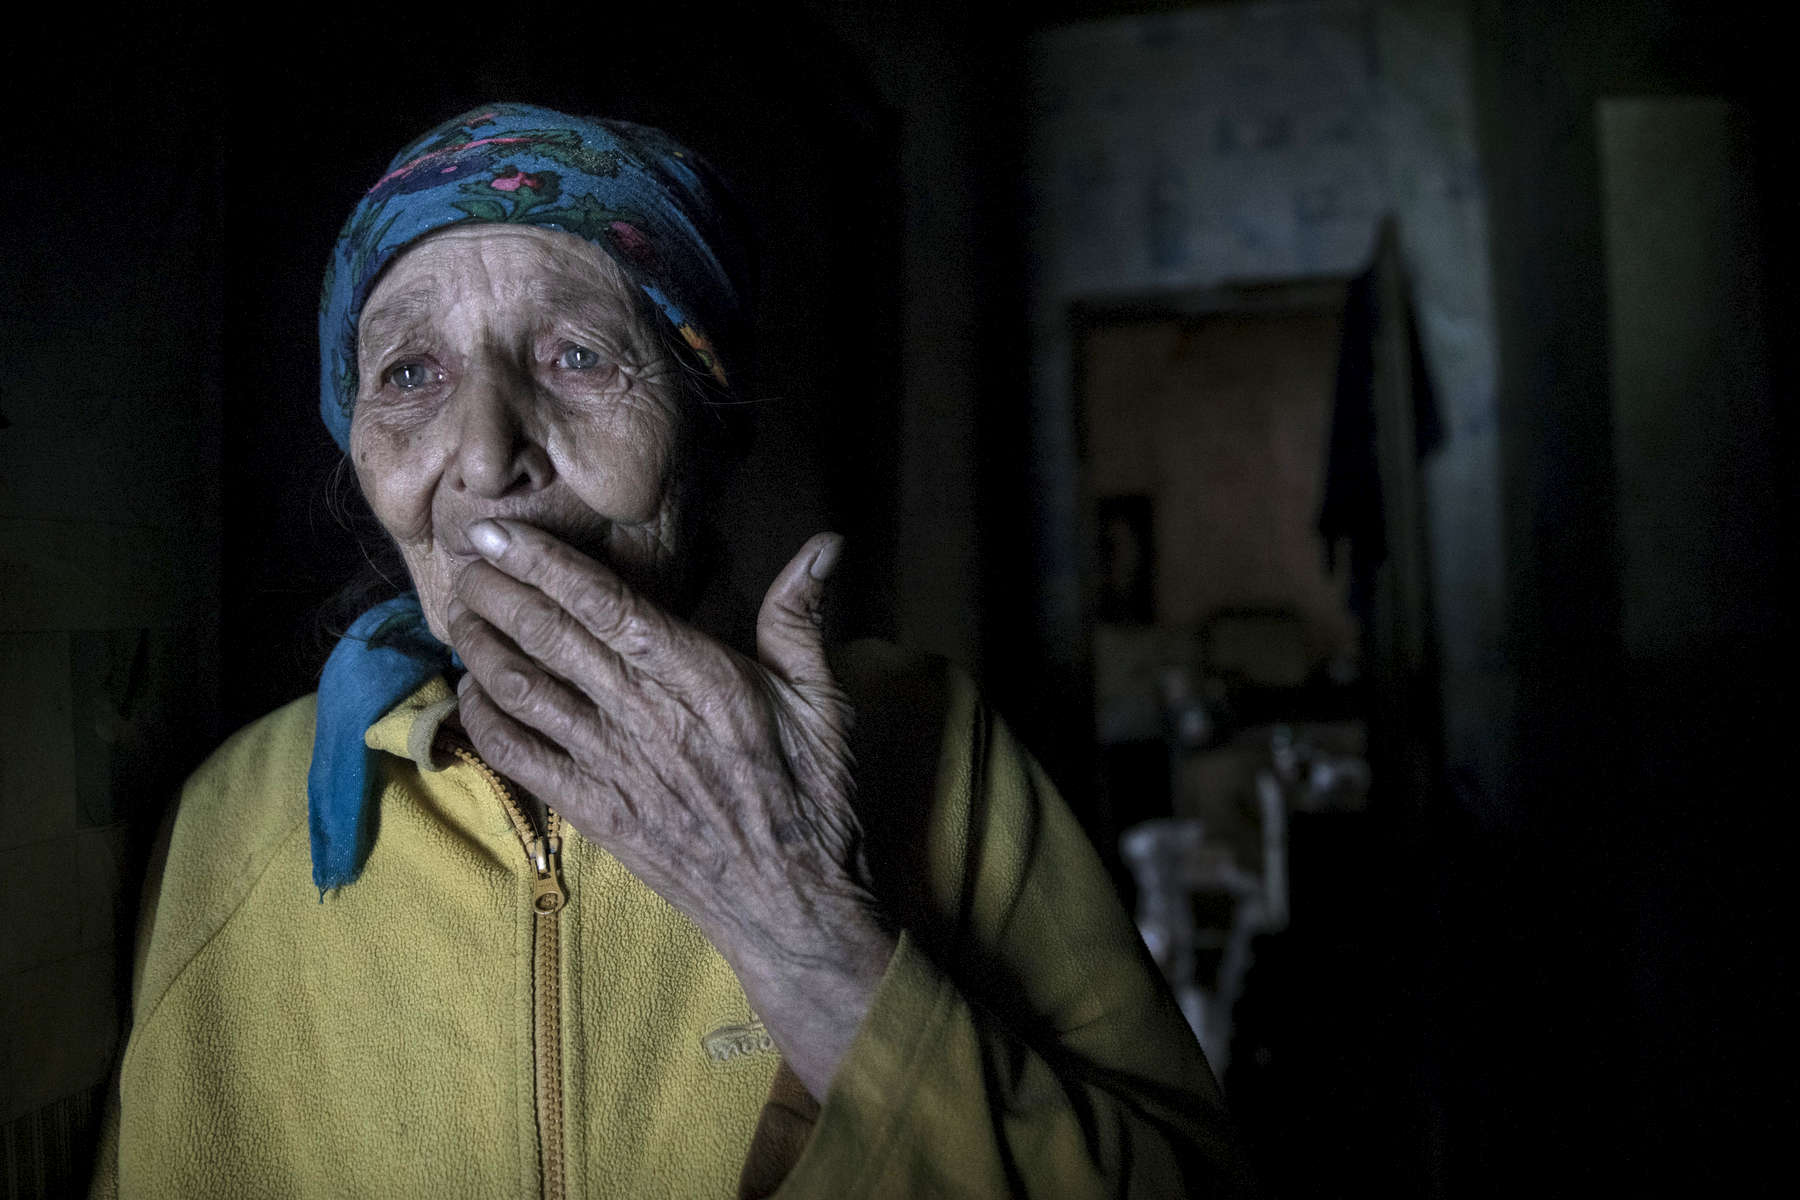 Opytne, Eastern Ukraine:  Mariya Gorpynych, age 76, lives alone. She speaks with tears in her eyes while talking about the death of her son. Victor,48 was killed due to the war in 2016, he was fatally injured by shelling that hit the home. He died in her hands. Her husband, died in the same year from a heart attack  from extreme stress of living too close to the front line. Mariya refuses to leave her village because her family are buried there.{quote}I have nowhere to flee, my whole family is buried here.{quote}  {quote}I got used to the continued shelling.{quote} Opytne is a war torn village on the contact line where only 43 people are left due to the dangers.